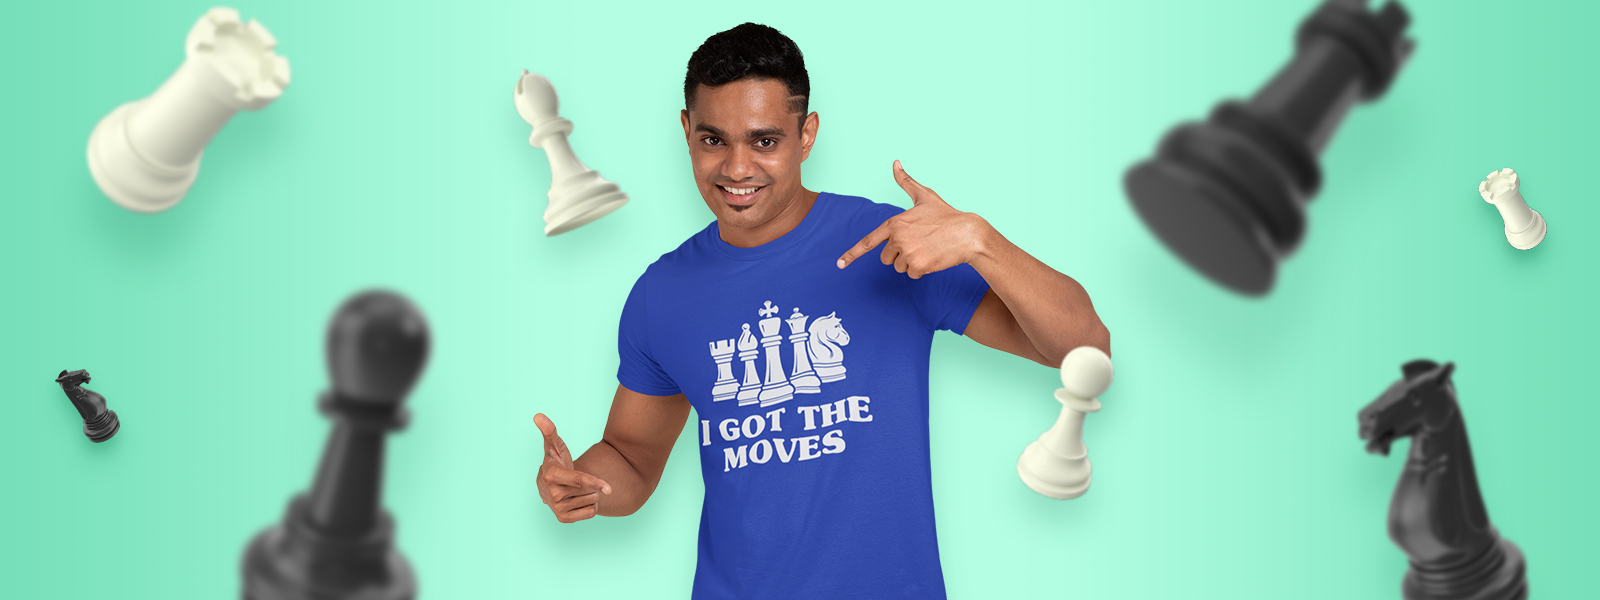 Cool Chess Shirts to Wear on Your Next Match